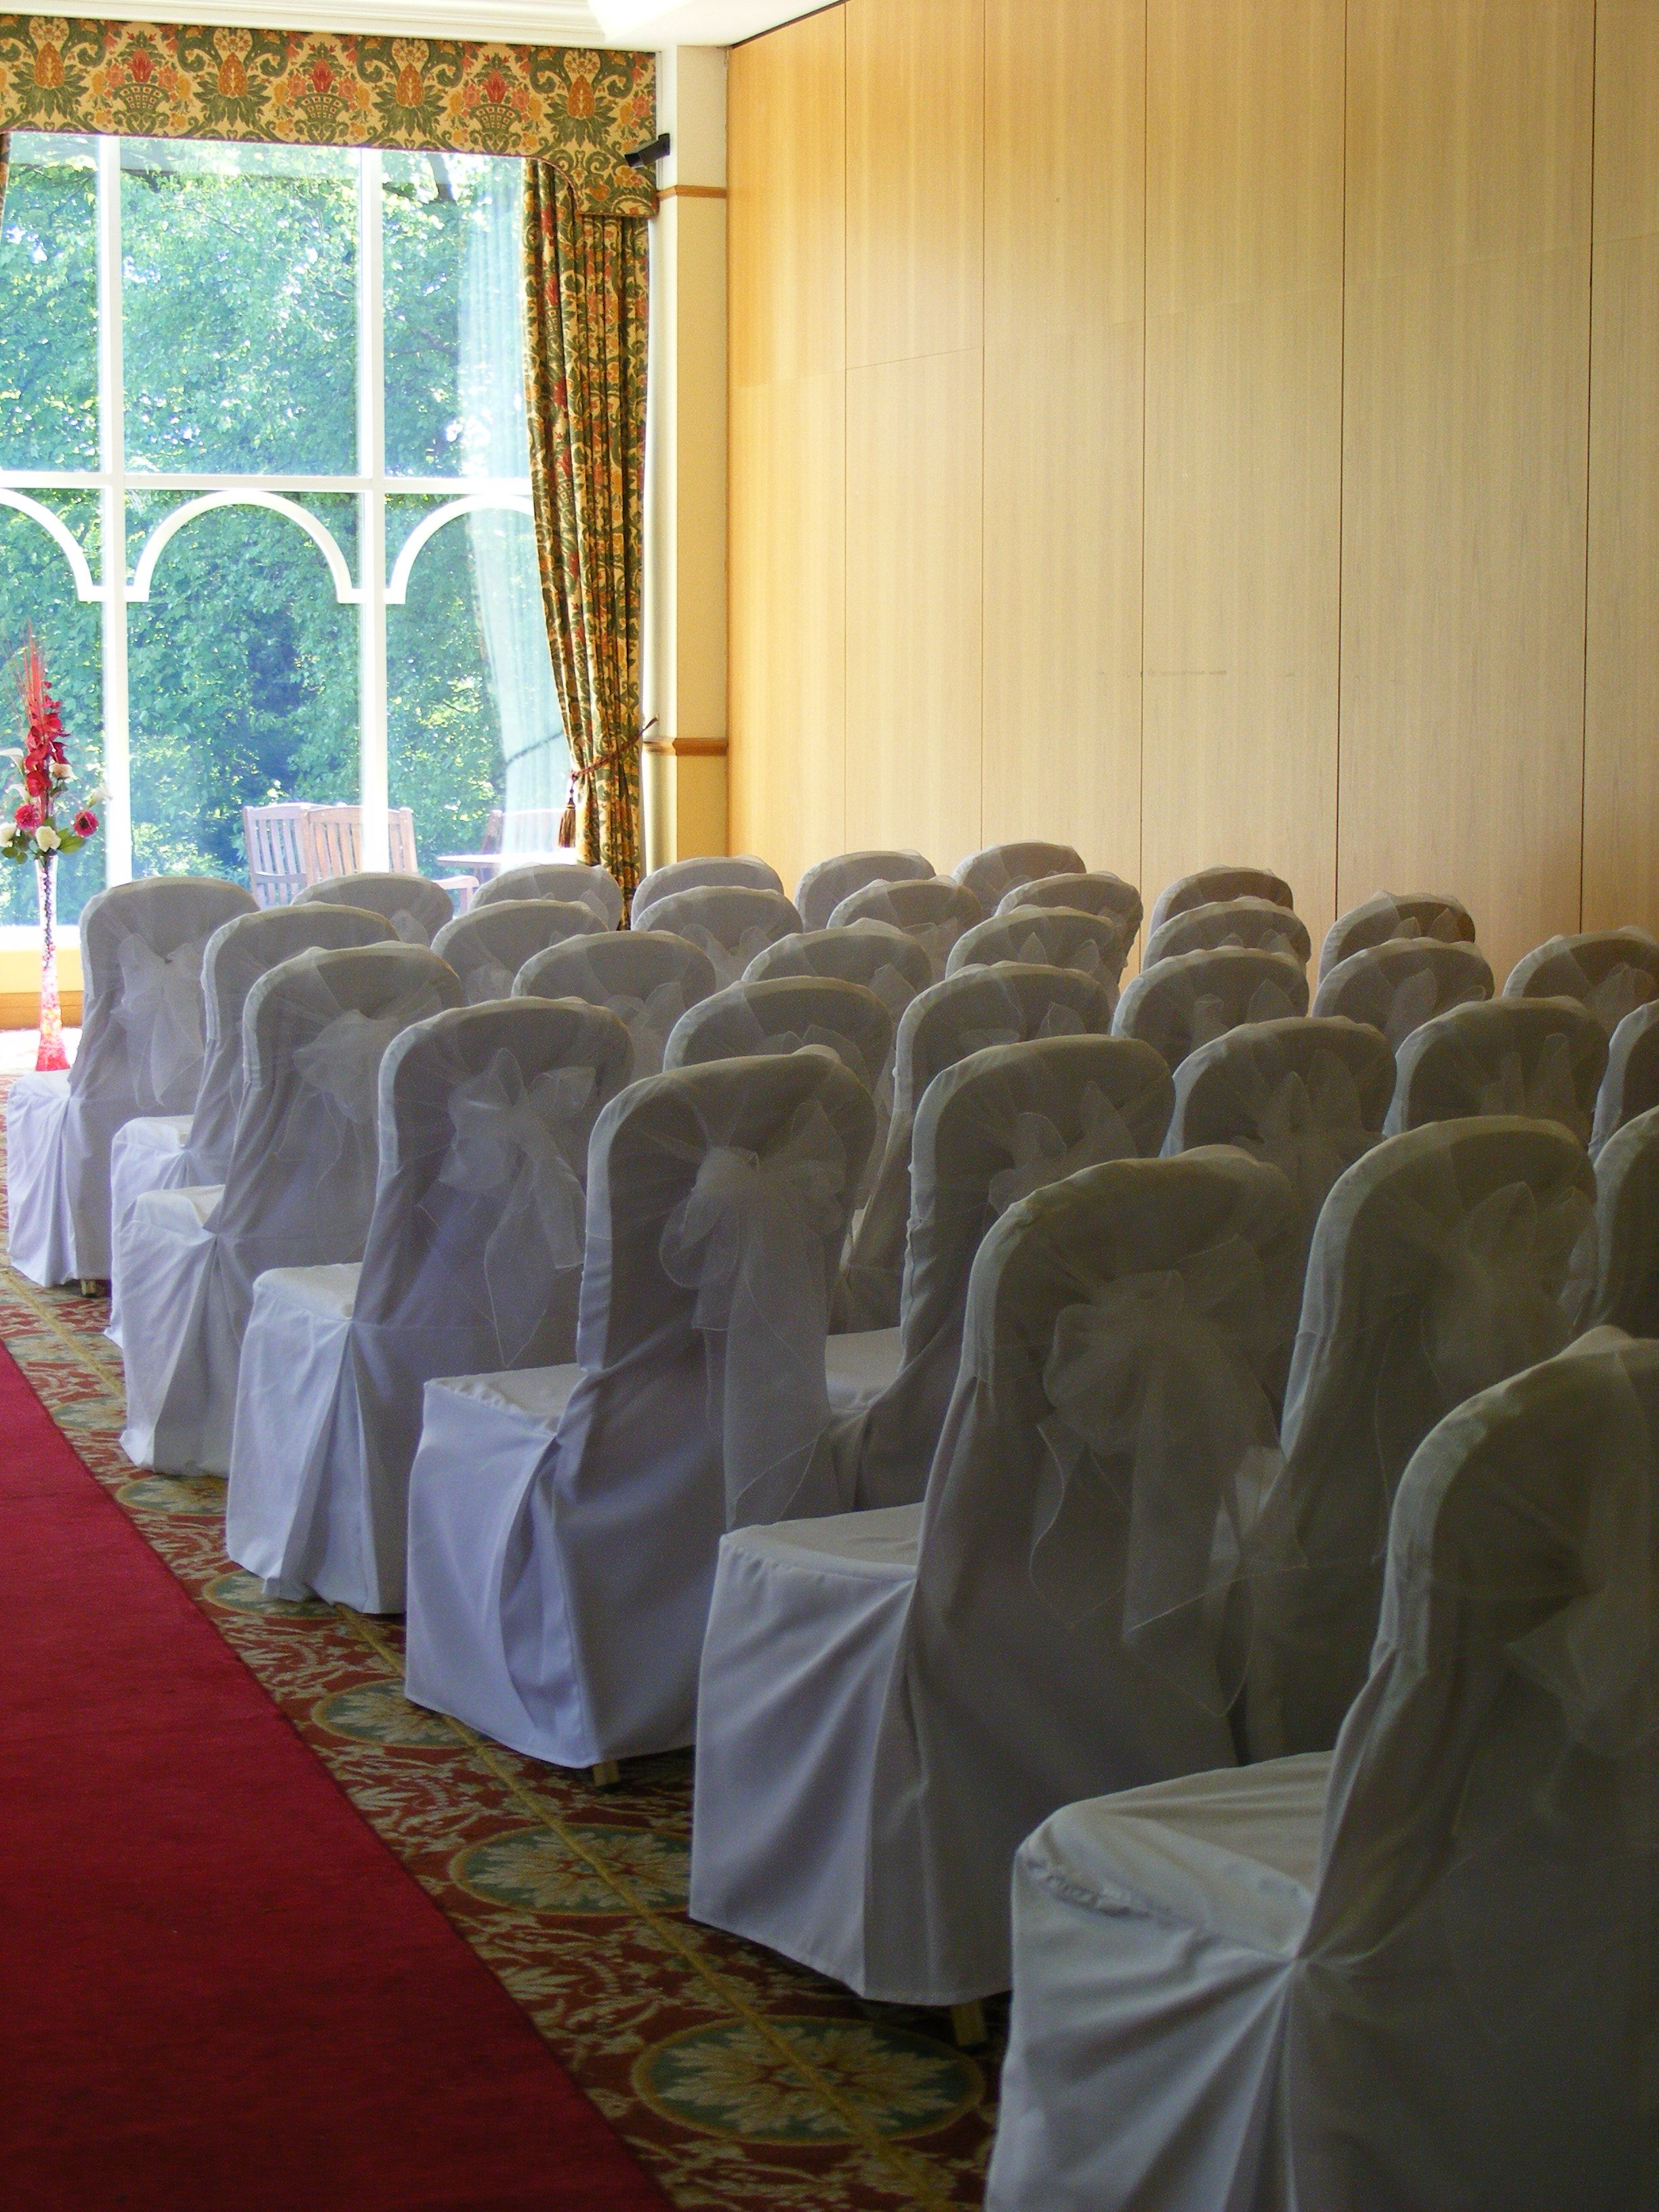 Court Weddings Chair Covers Sash Wedding Ceremonies Clic White Cotton Band Receptions